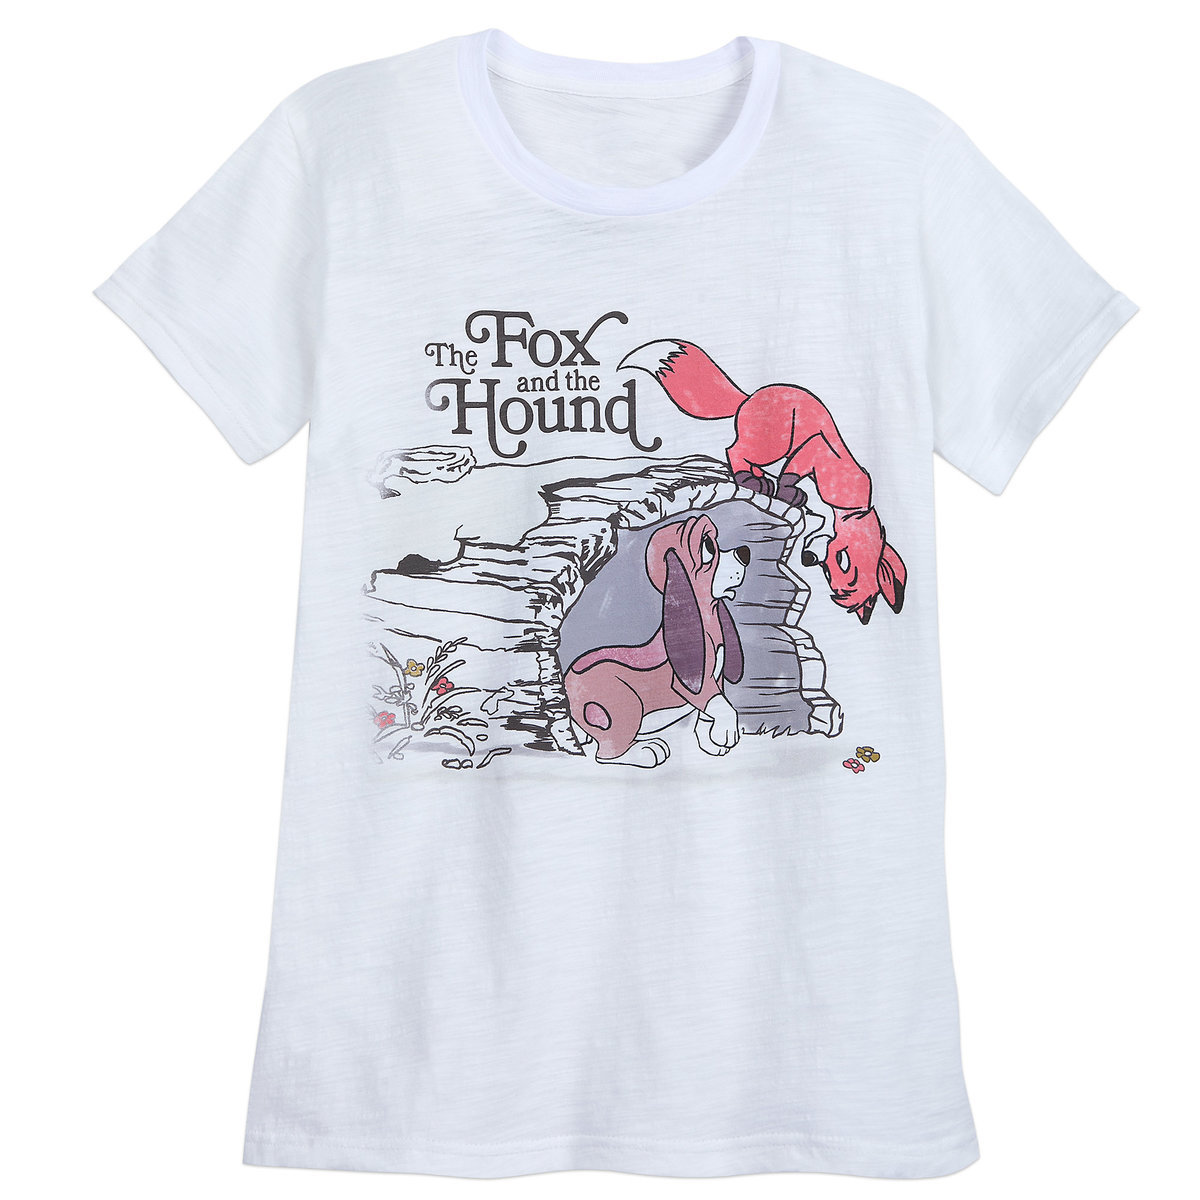 fc4a9b1d2 Product Image of The Fox and the Hound T-Shirt for Women # 1